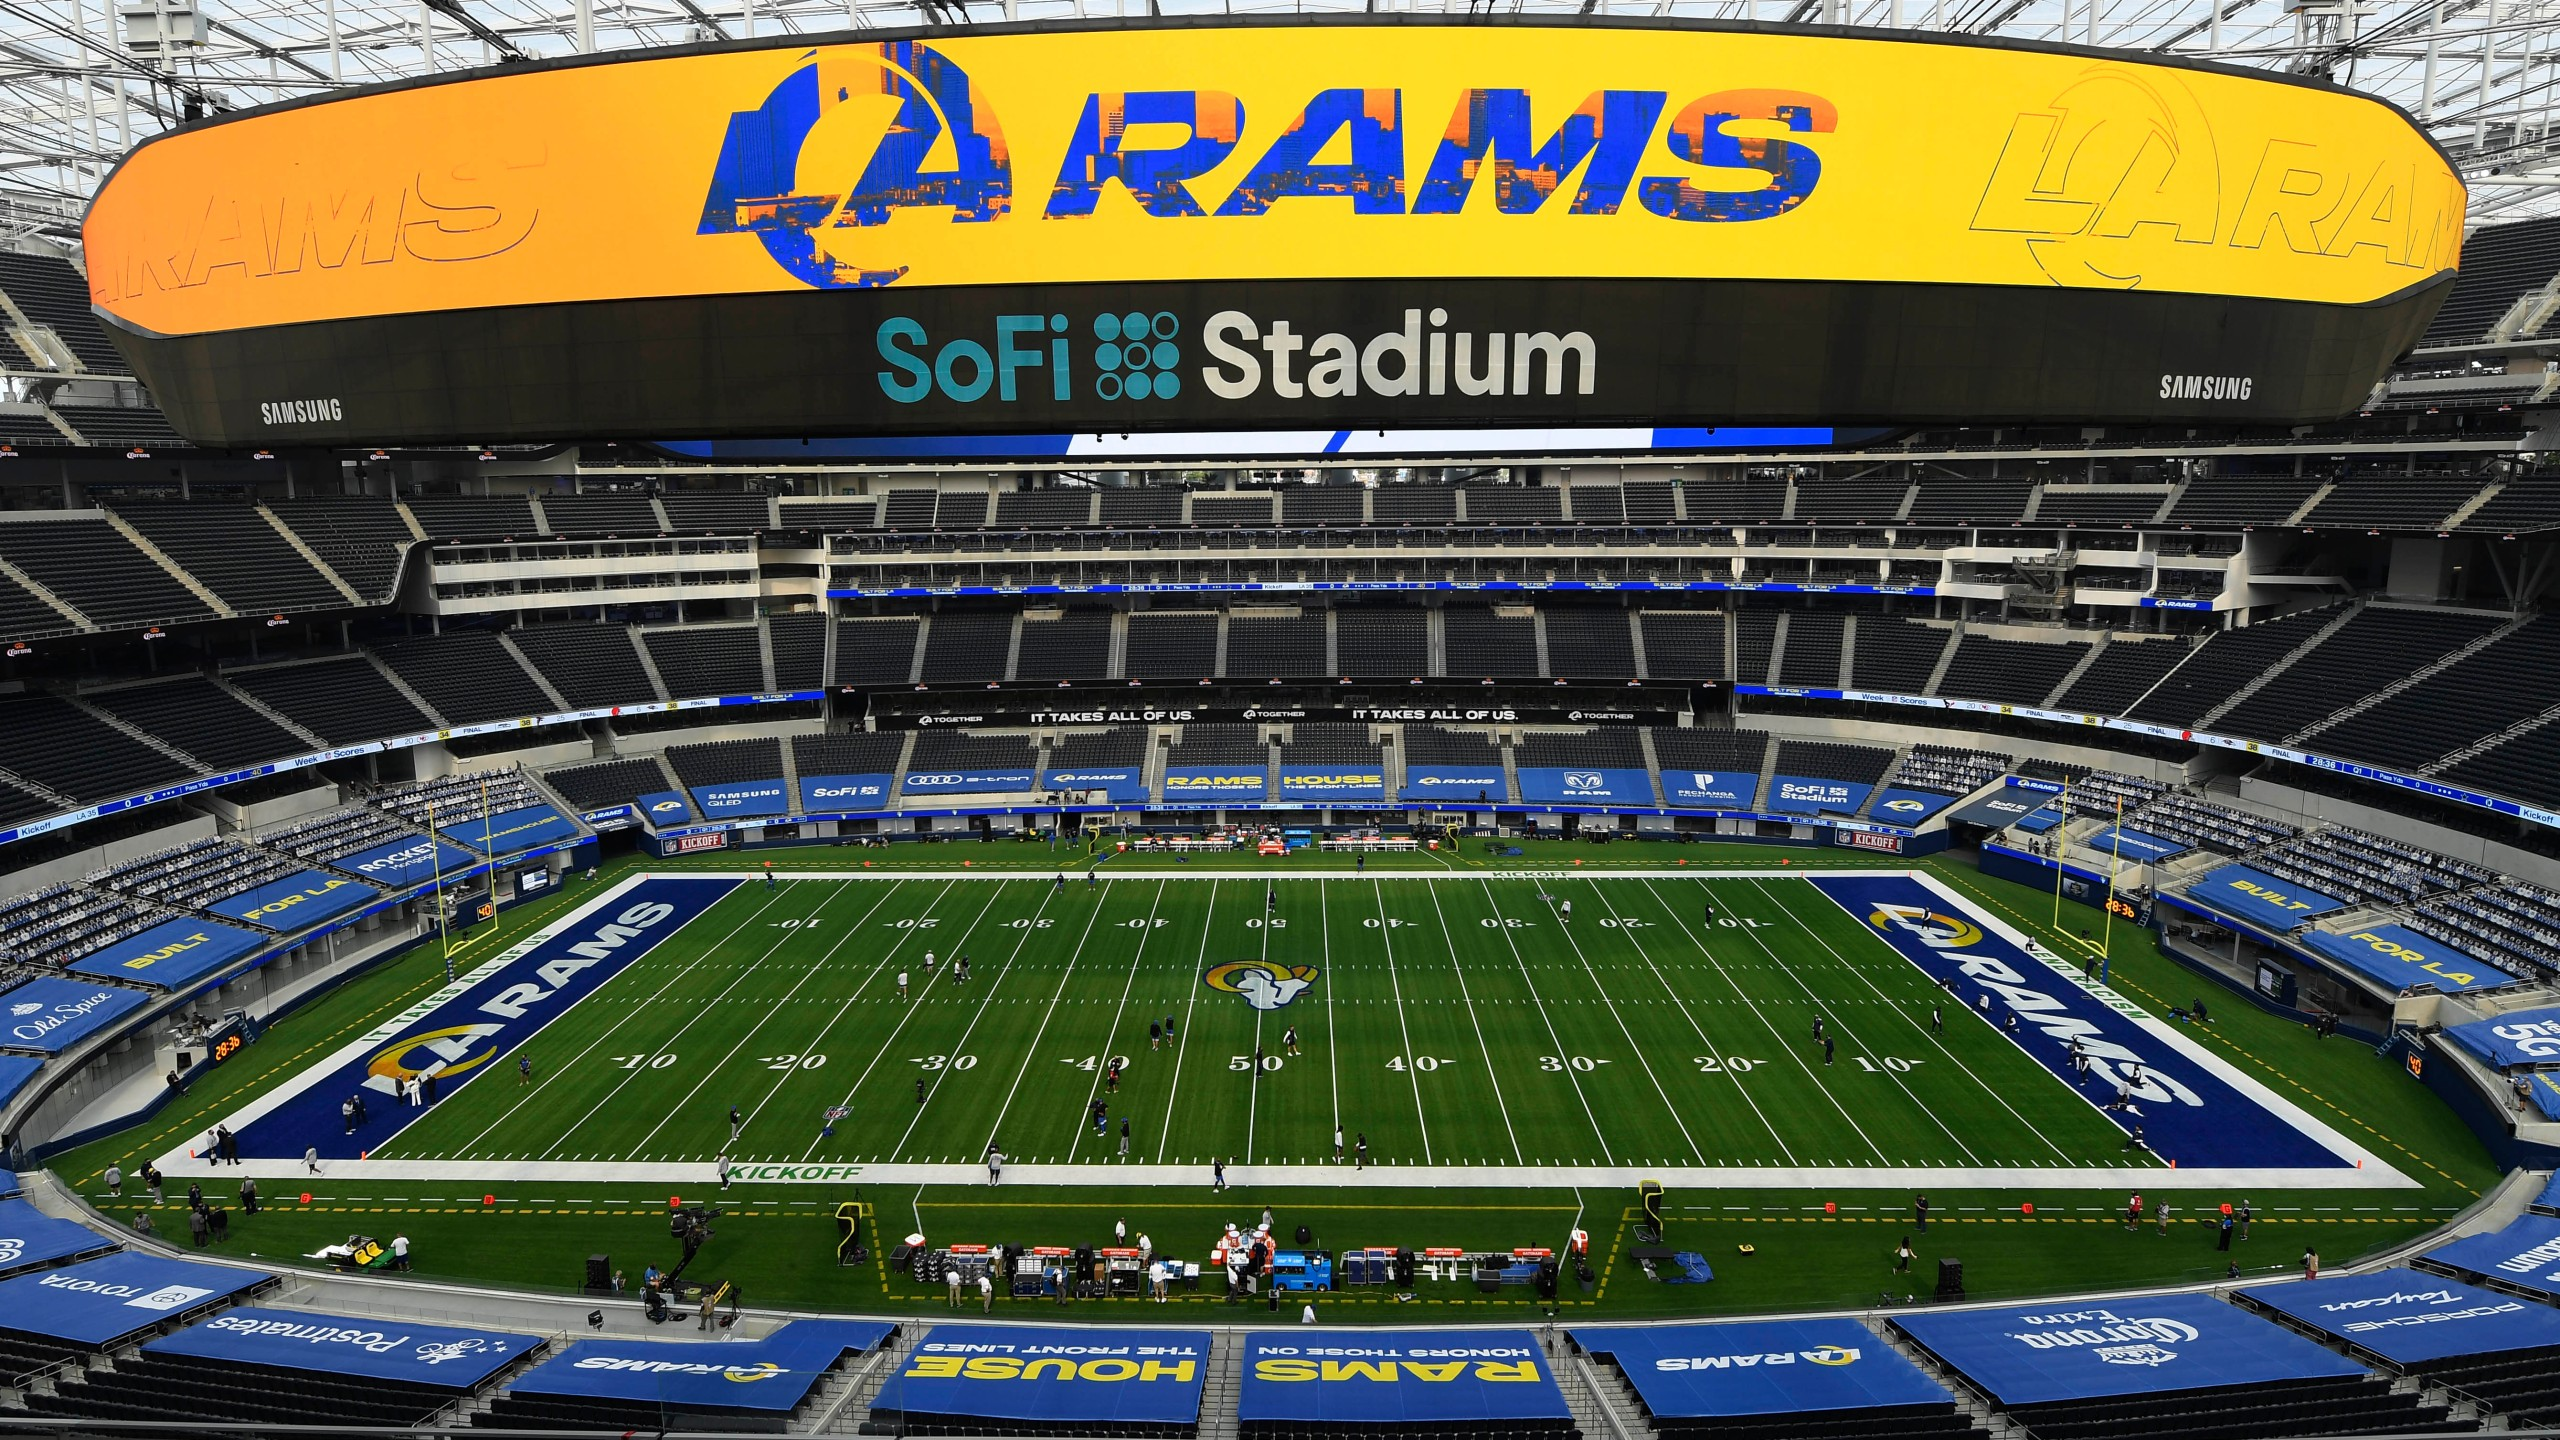 A general view of the new Sofi Stadium before the game between the Los Angeles Rams and the Dallas Cowboys on September 13, 2020, in Inglewood, California. (Kevork Djansezian/Getty Images)